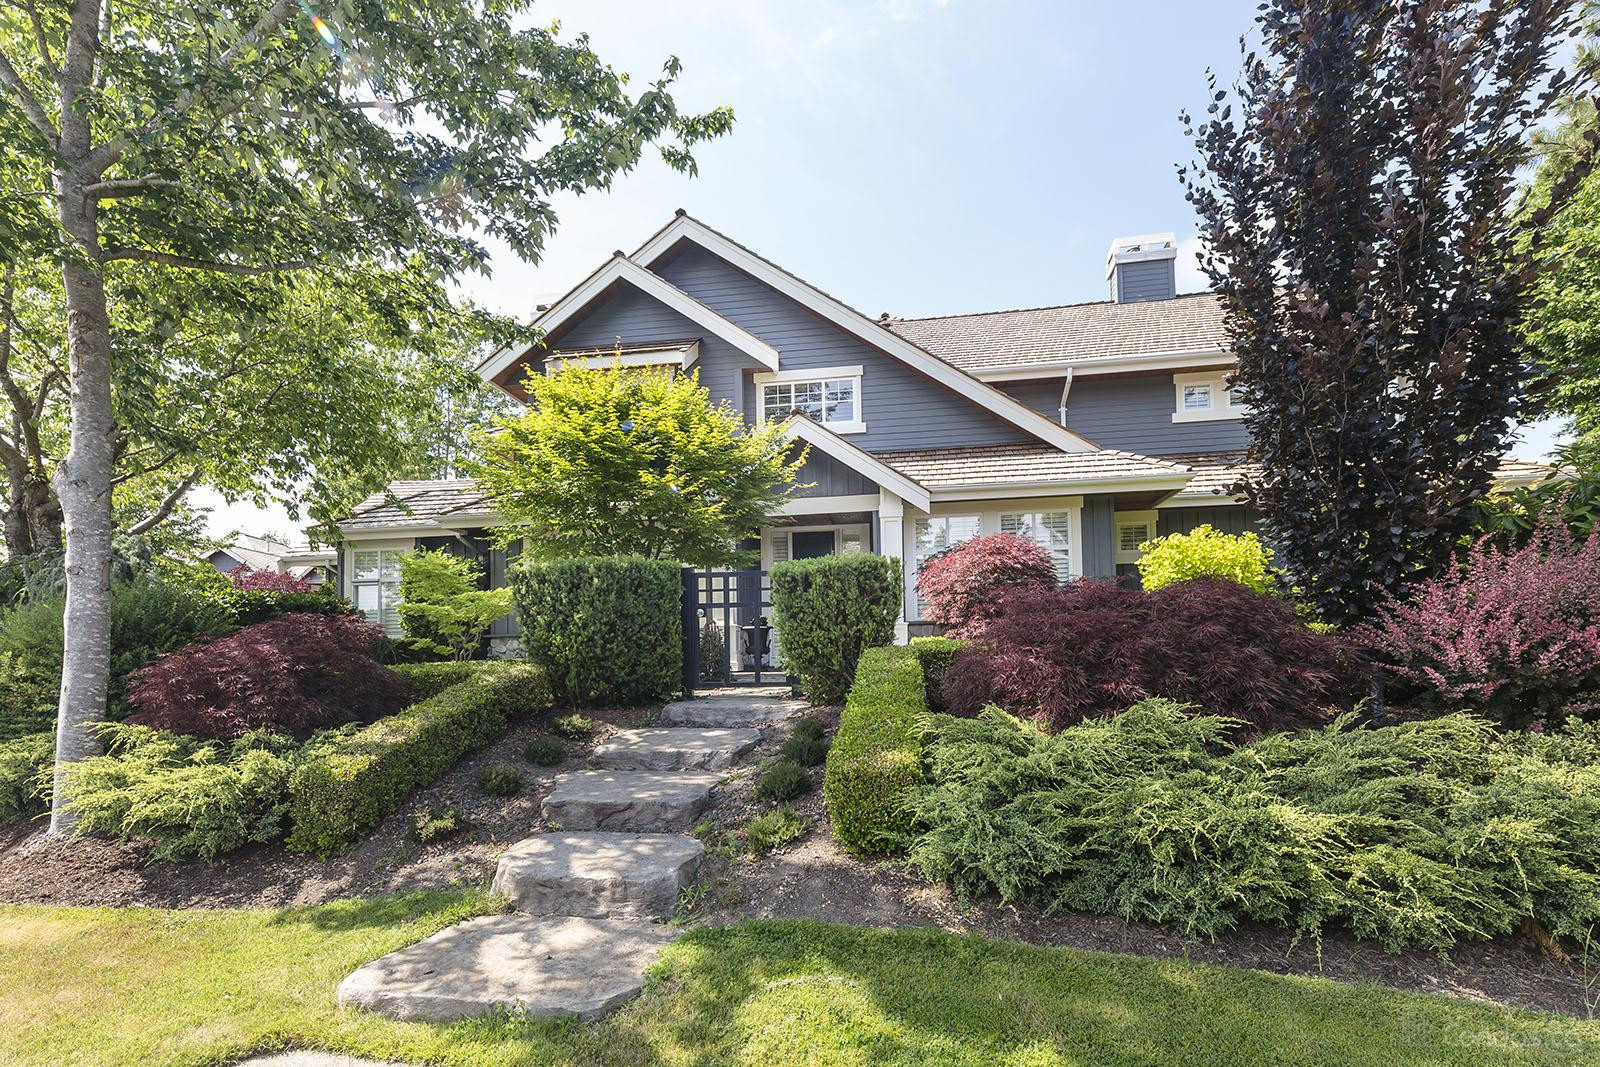 Wedgewood at 15715 34 Ave, Surrey 0